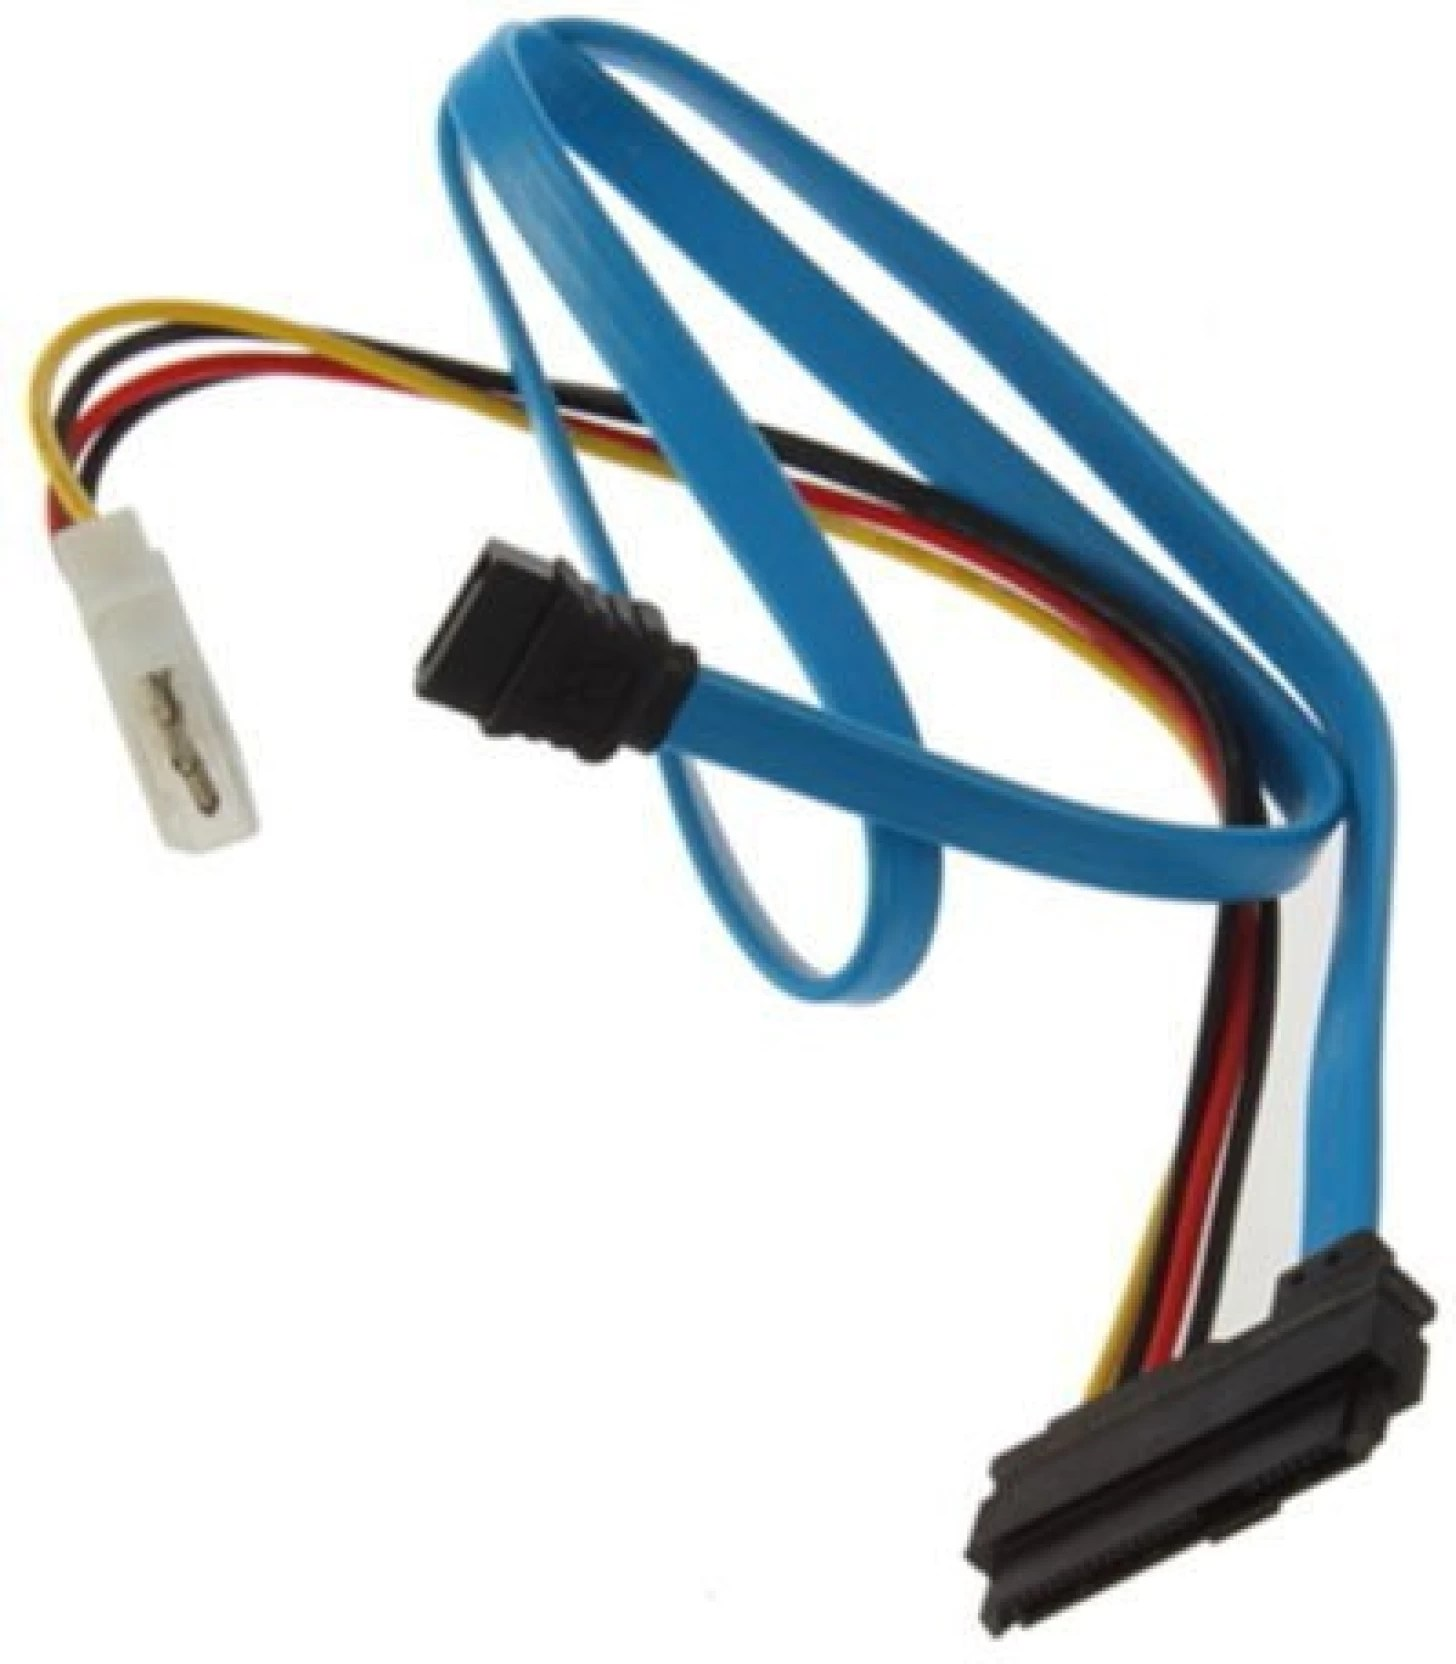 buyyart tv out cable new 1pcs high quality 7 pin sata serial ata to sas 29 pin 4 pin cable male connector adapter blue black for computer  [ 1456 x 1664 Pixel ]